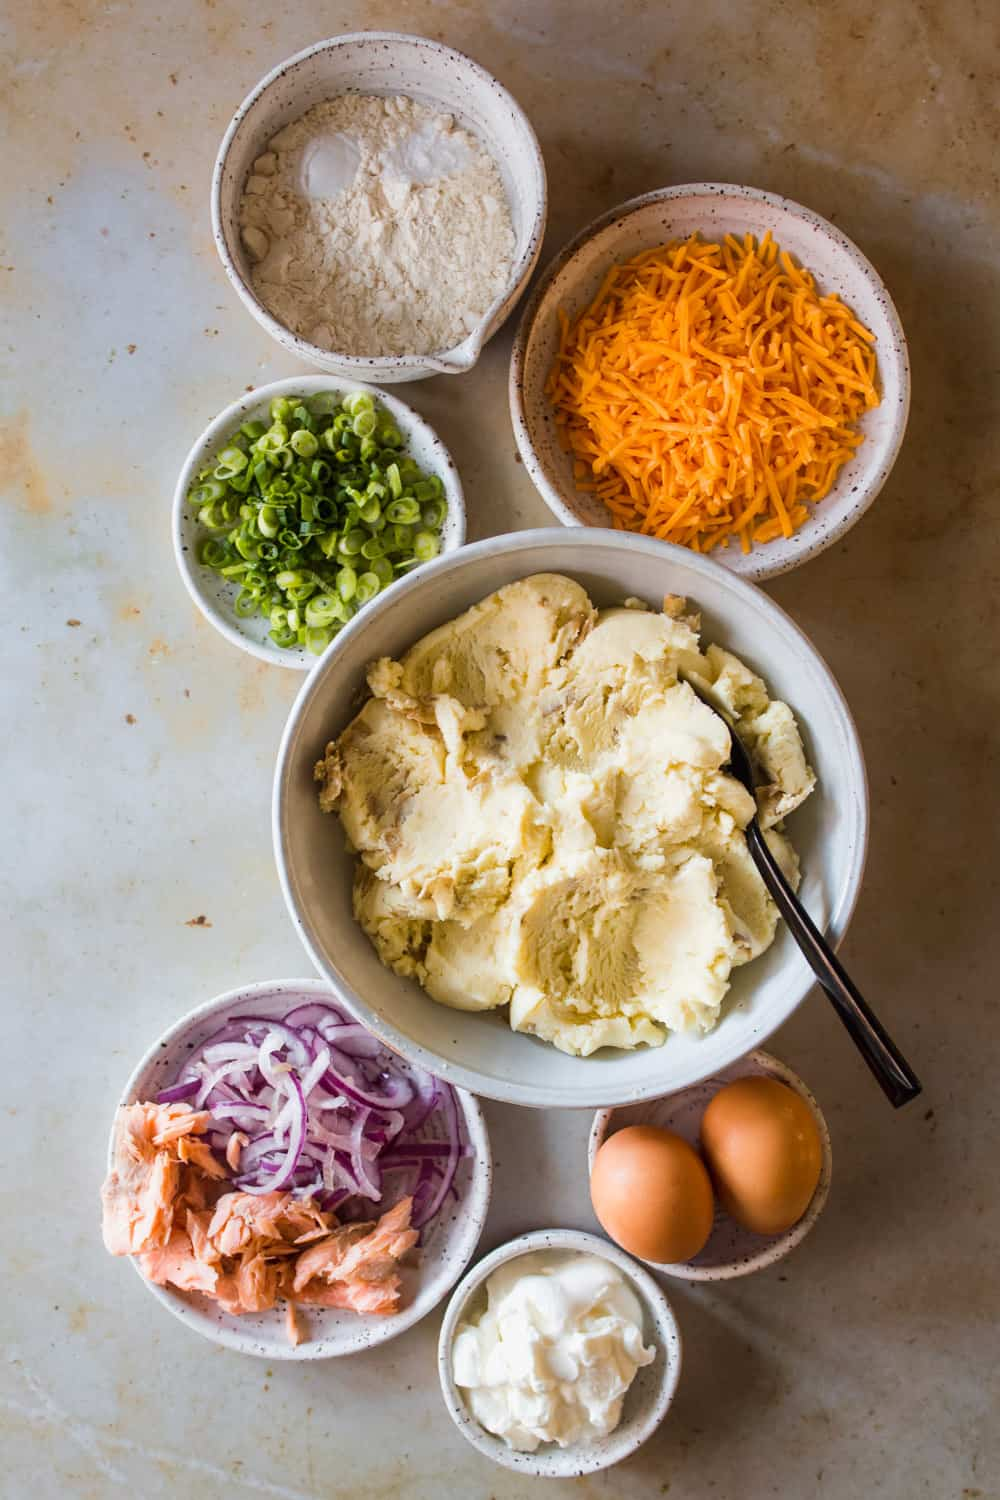 Mashed potatoes in a large white bowl. Cheese, scallions, onions, eggs, and flour in separate white bowls on the side.